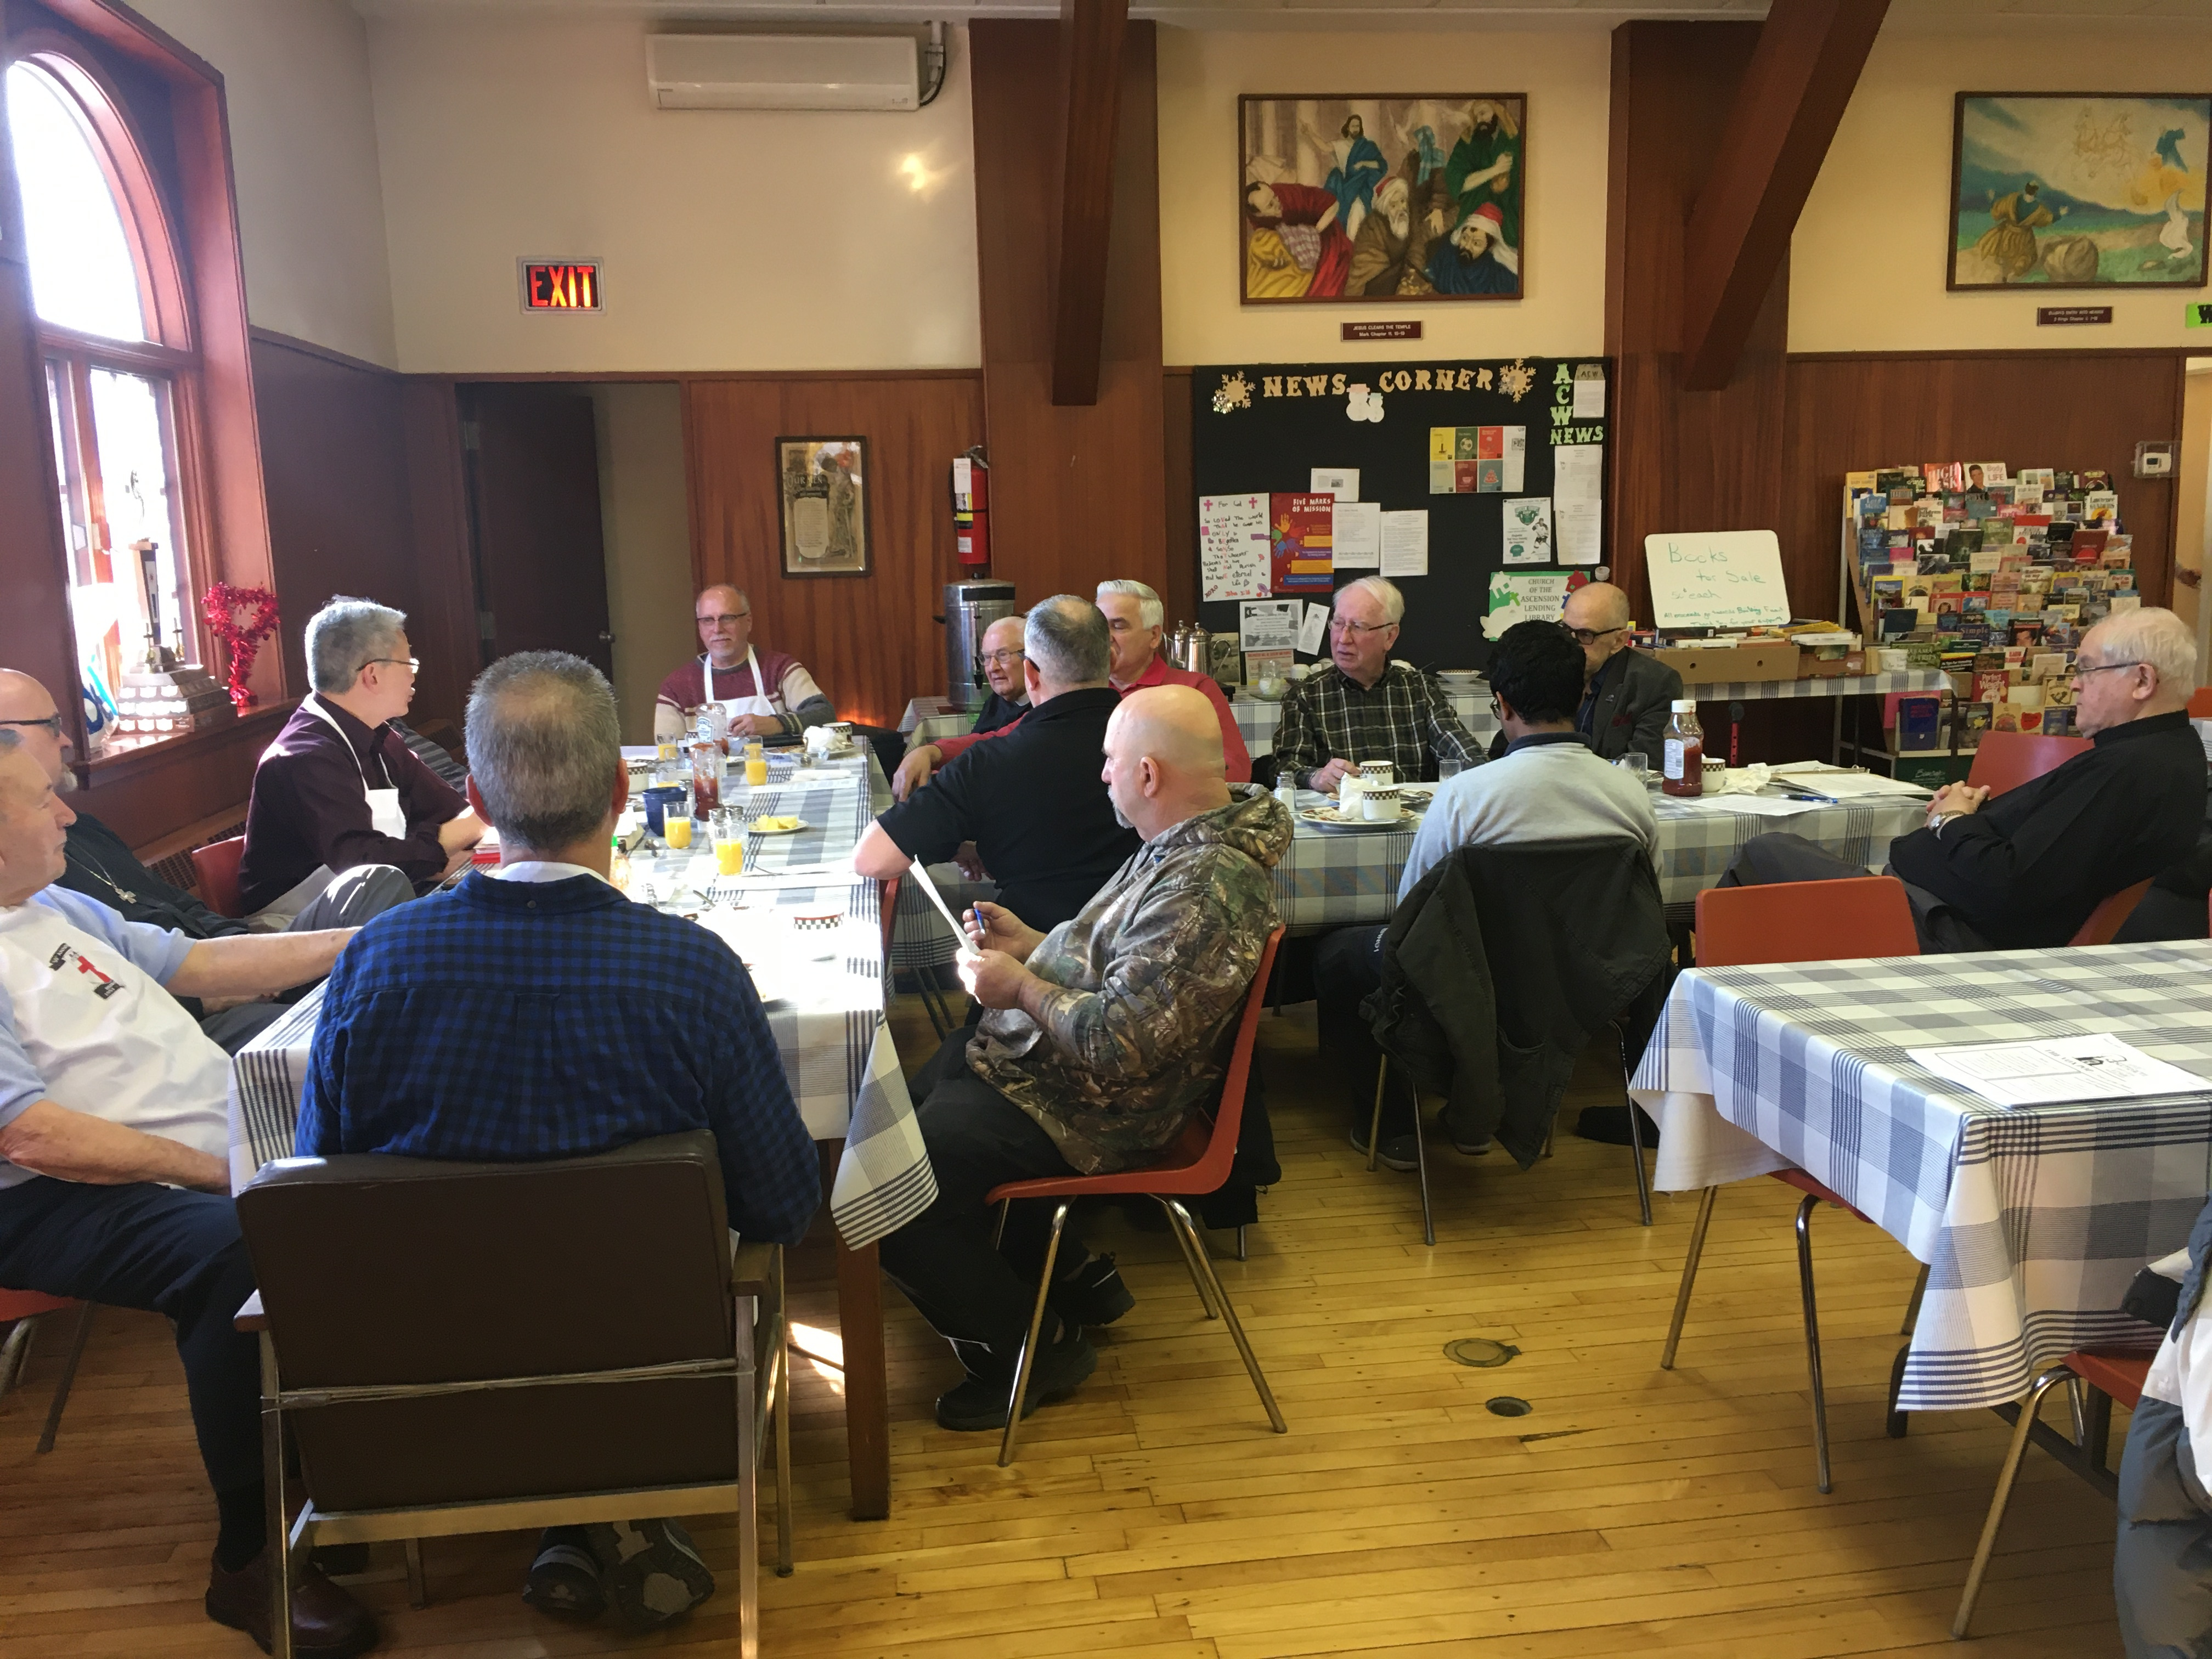 March 8th, 2020 Brotherhood of Anglican Churchmen breakfast meeting, chaired by President Perry